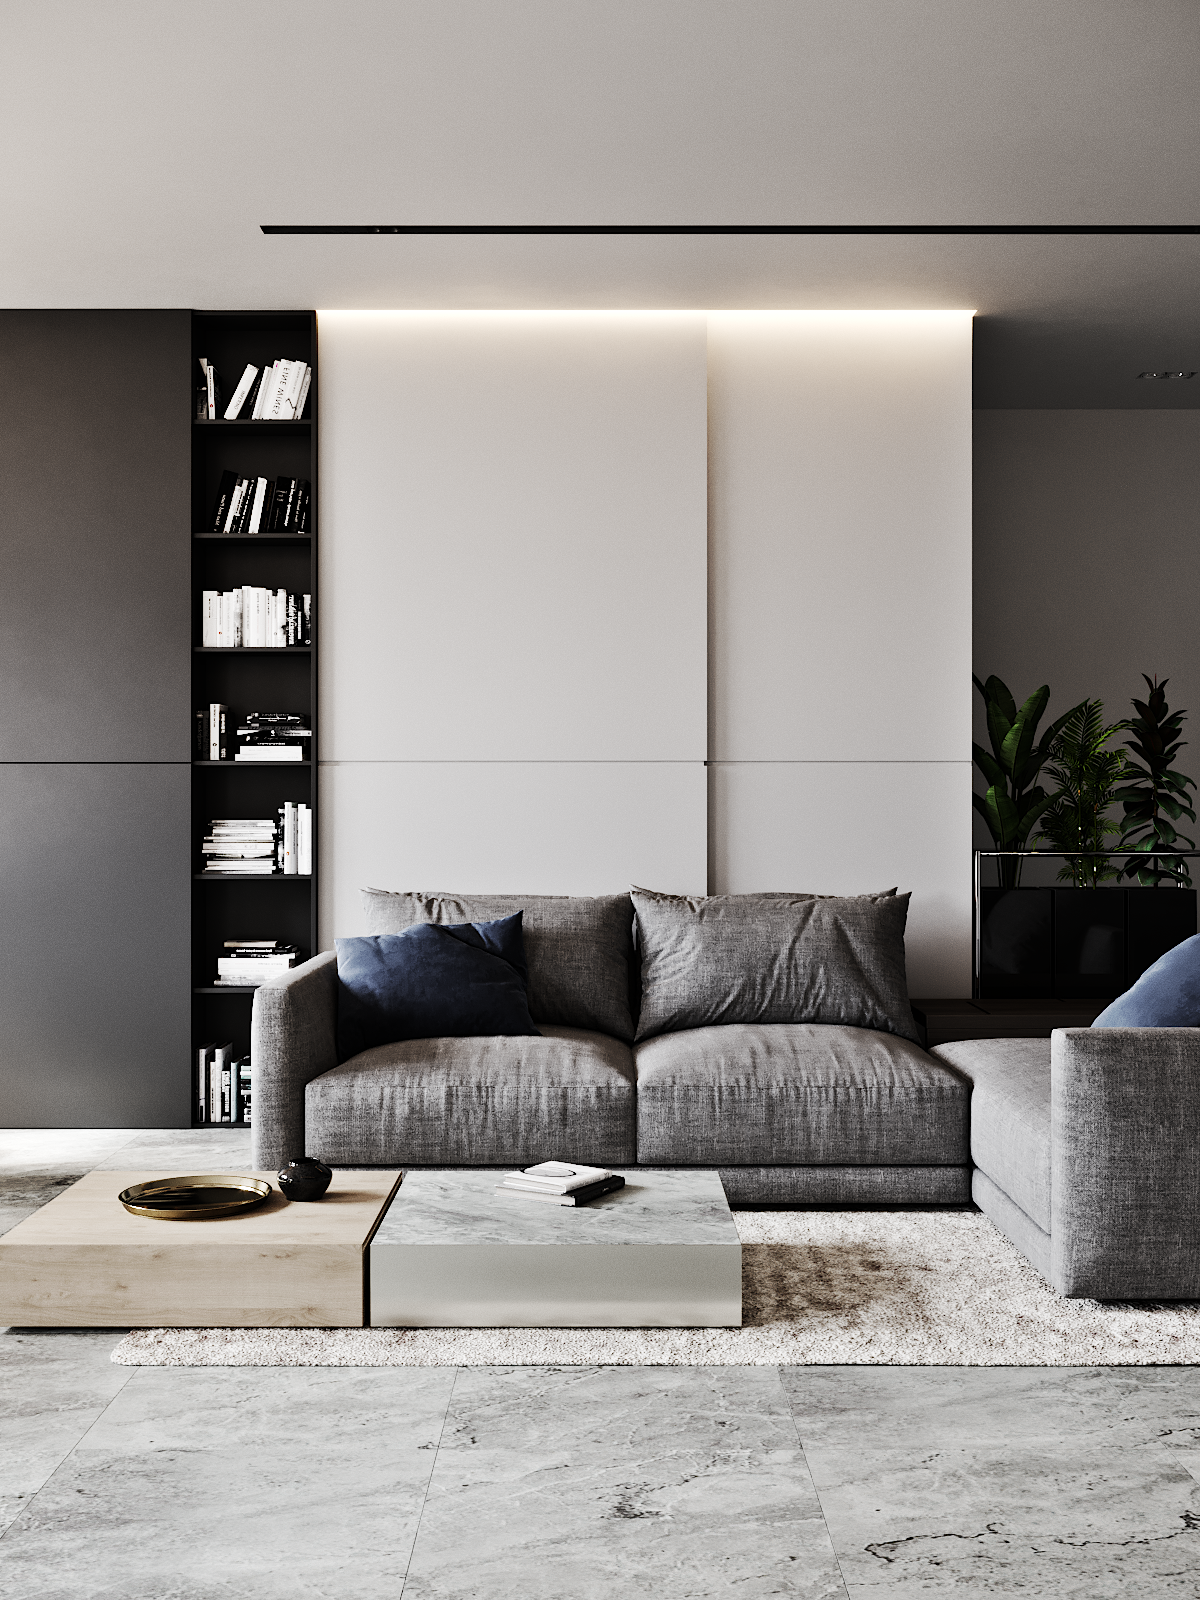 Autodesk Room Design: A Muted Interior For Everyday Inspiration